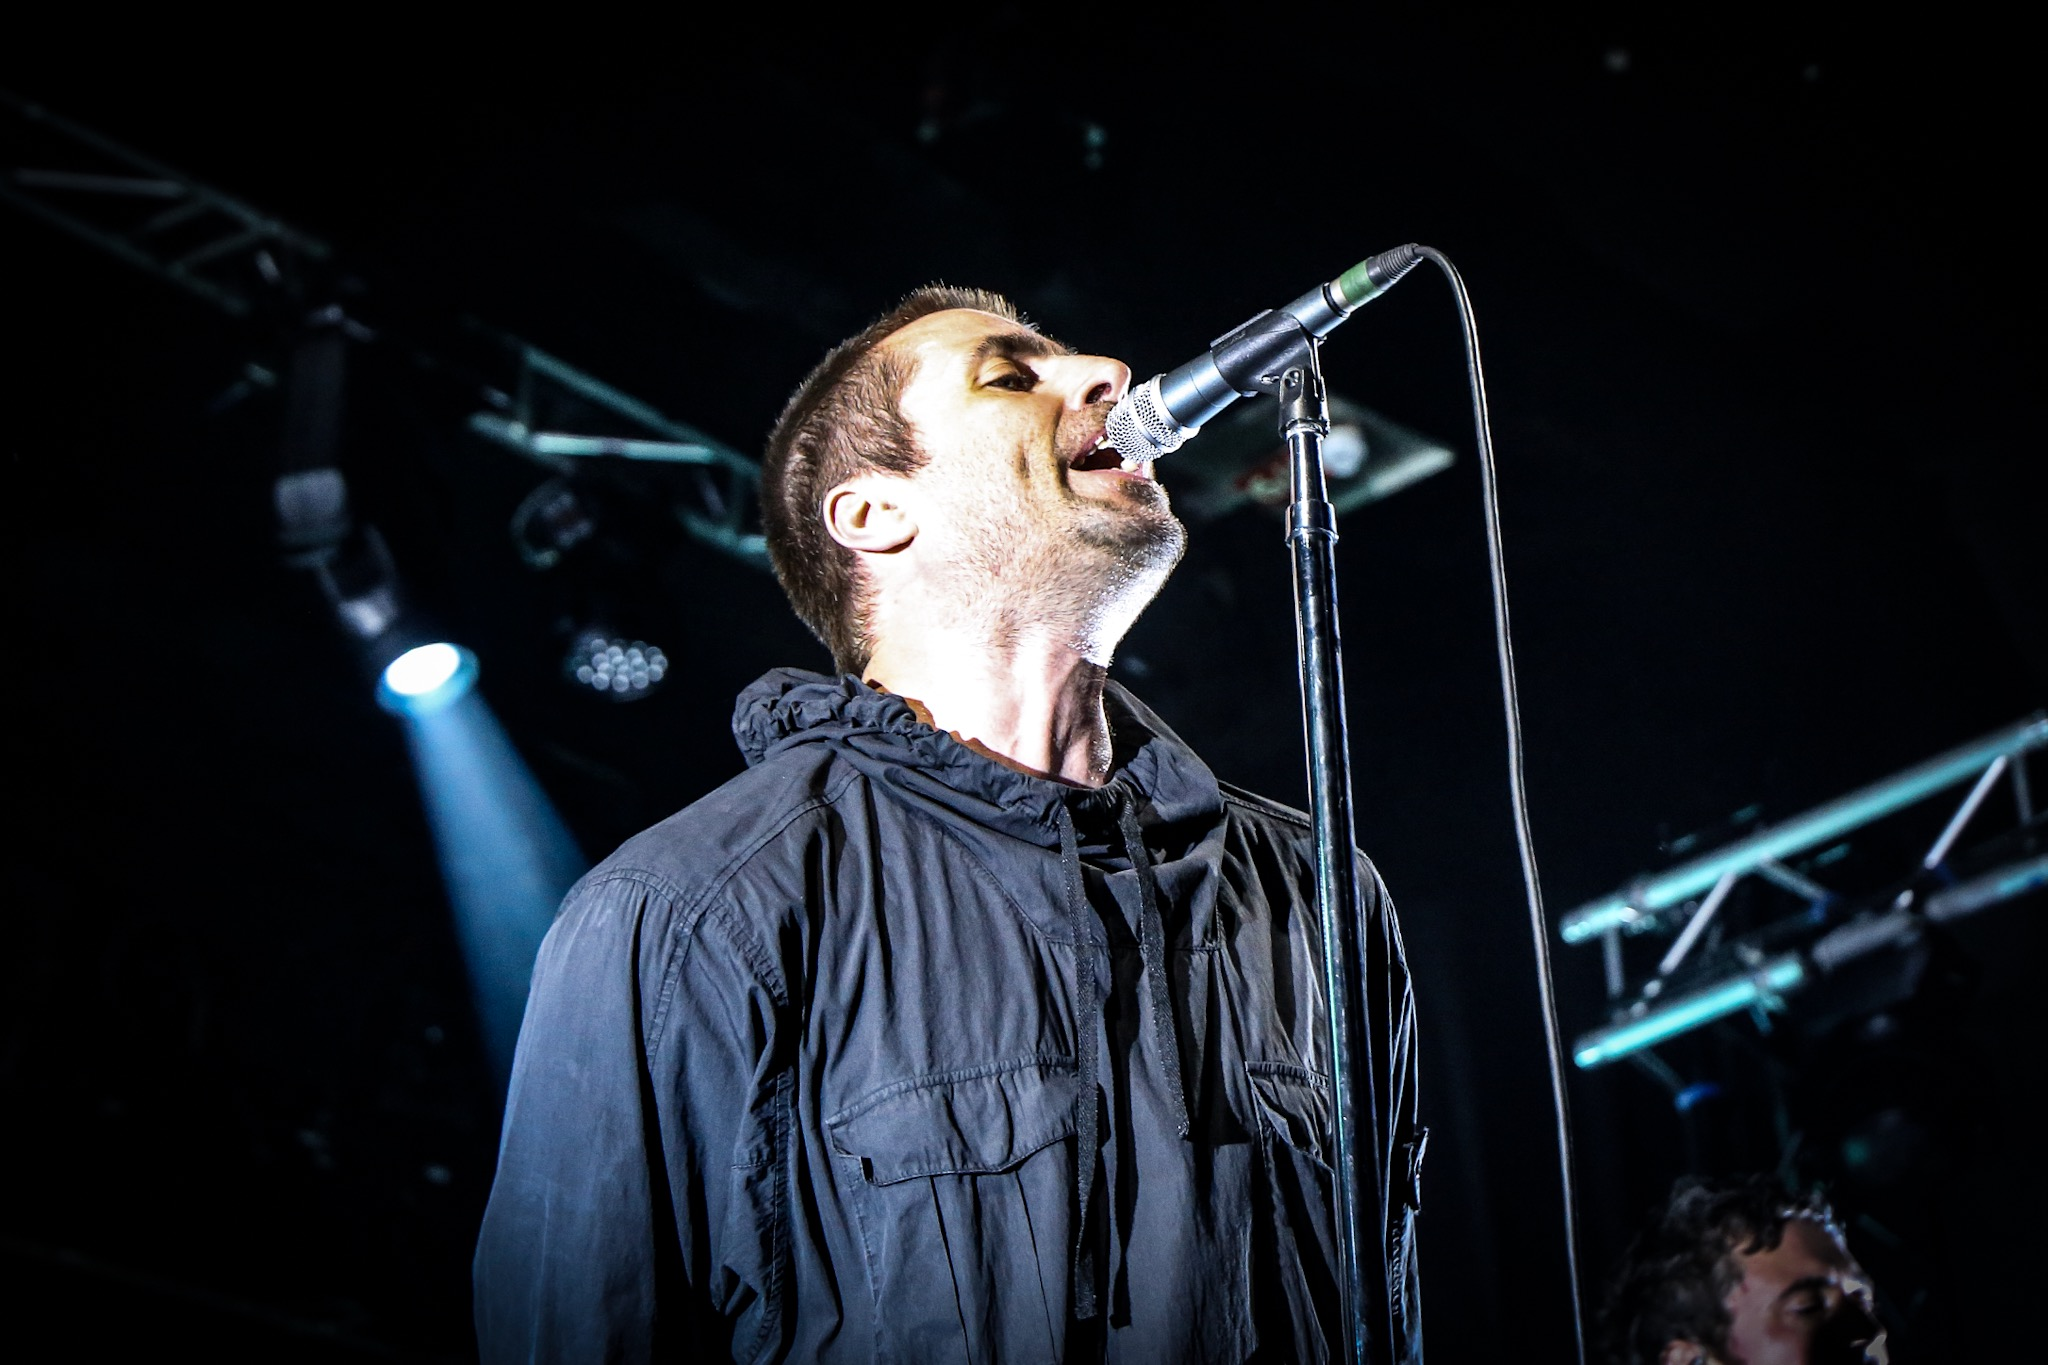 Liam Gallagher draws the crowds for a secret set at Day Two of Reeperbahn Festival